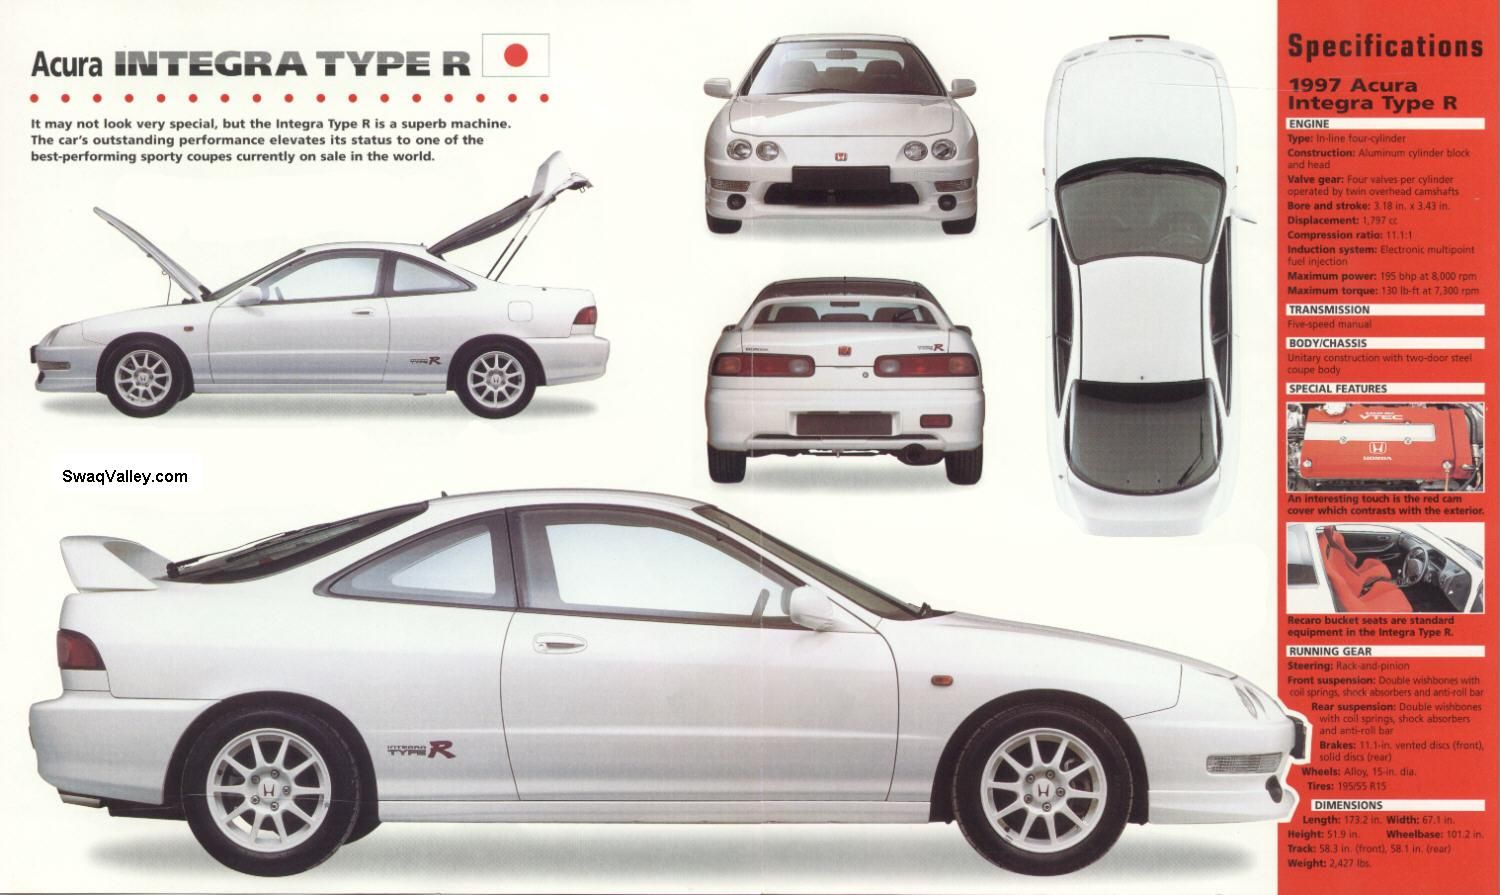 images for > acura integra type r | honda integra type r